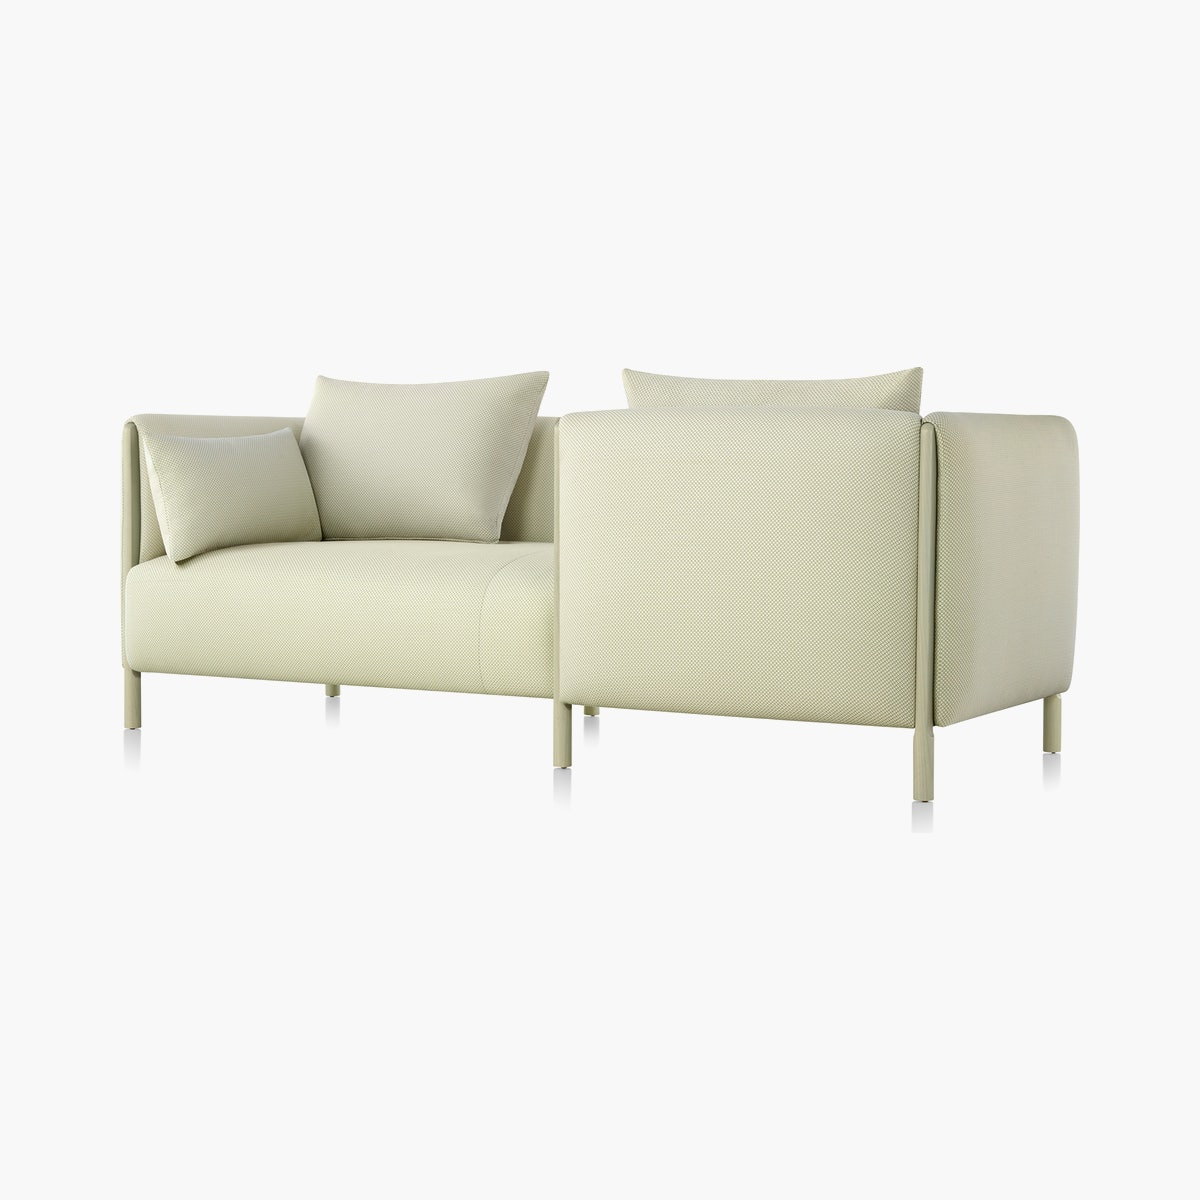 ColourForm Tete-a-Tete Sofa